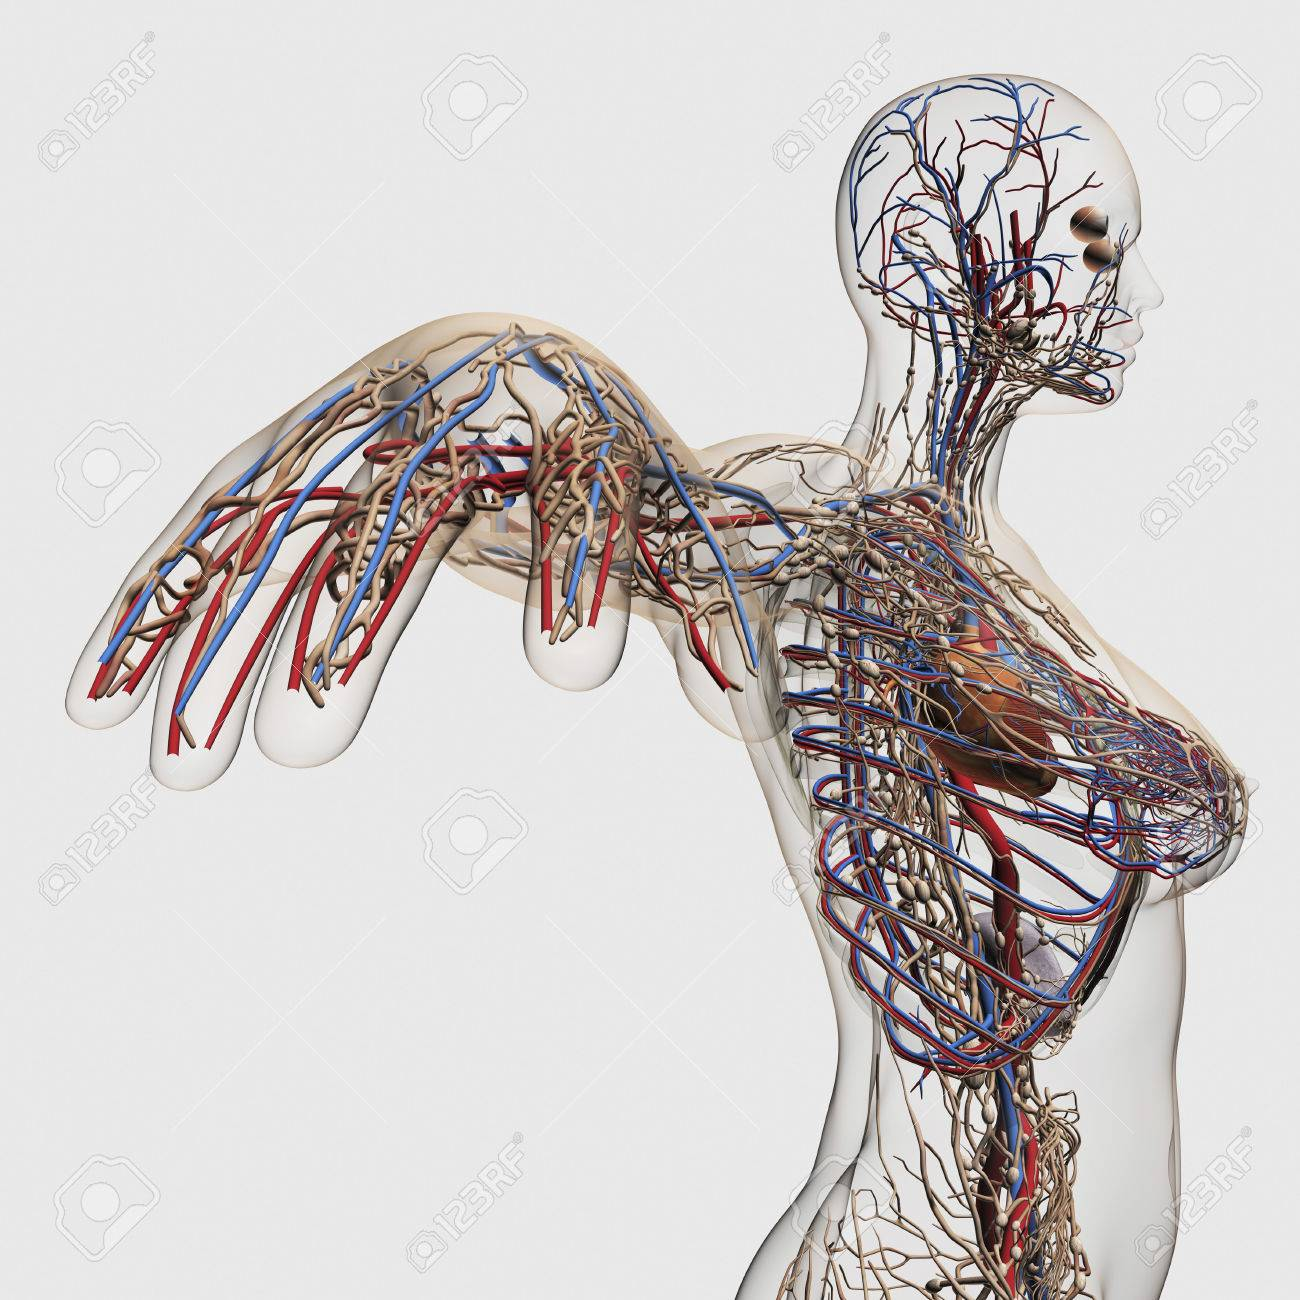 Medical Illustration Of Arteries, Veins And Lymphatic System.. Stock ...